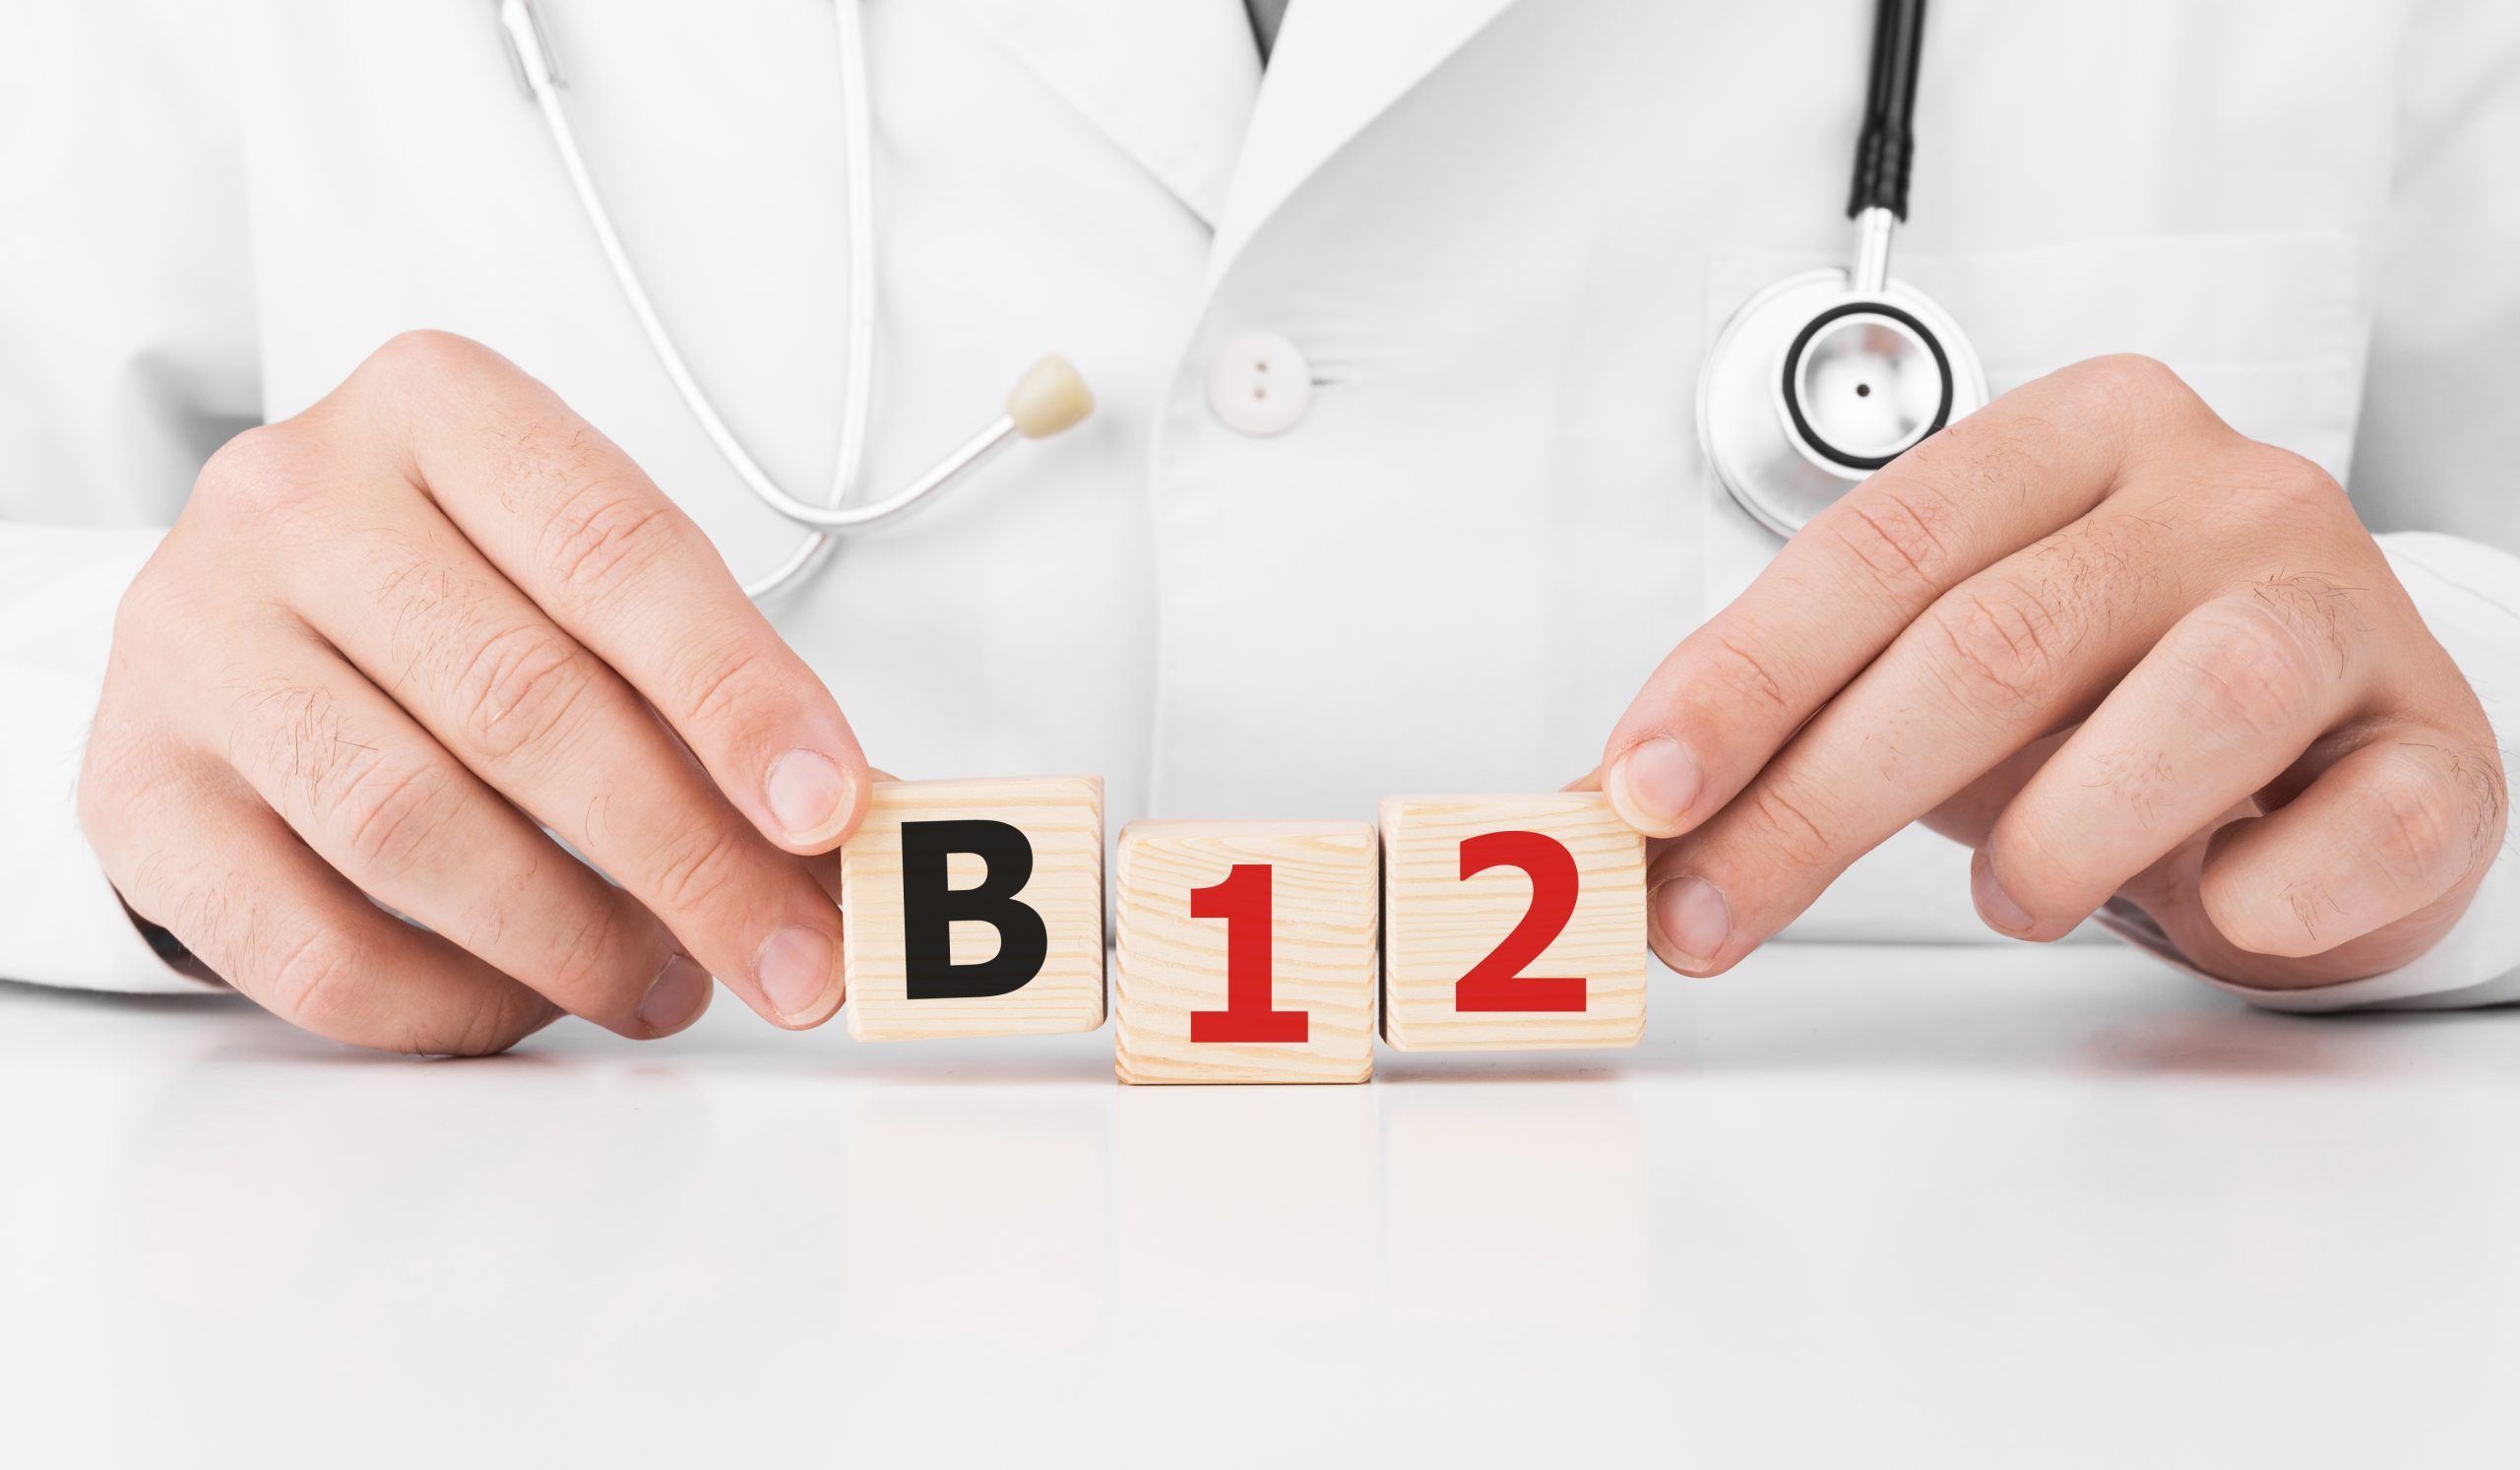 Vitamin B12 and your body